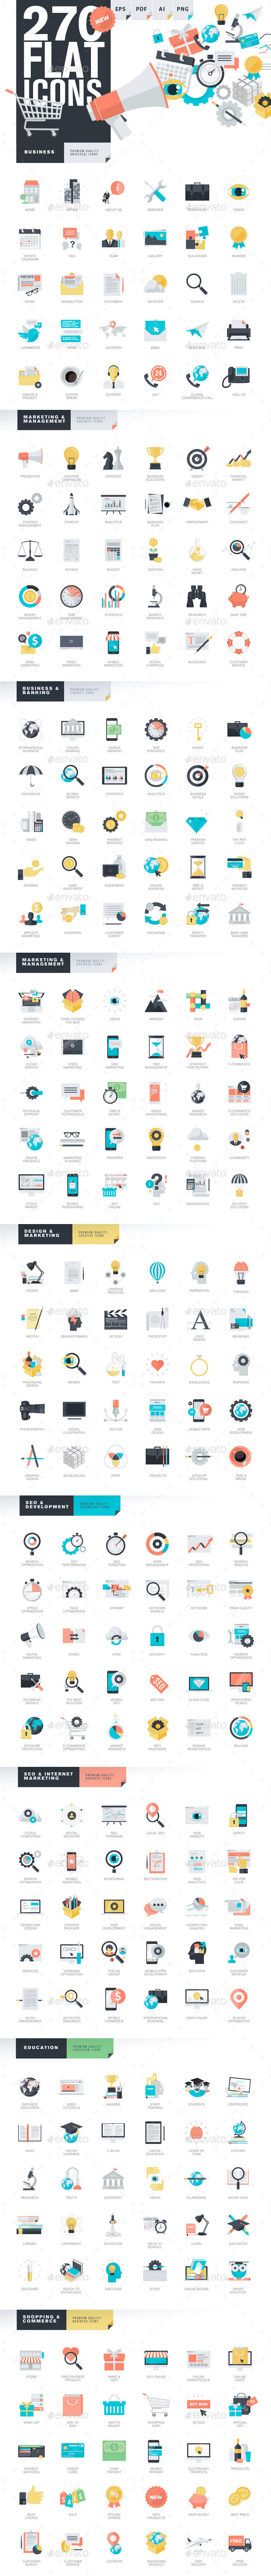 GraphicRiver Modern Flat Design Style Icons 11203276